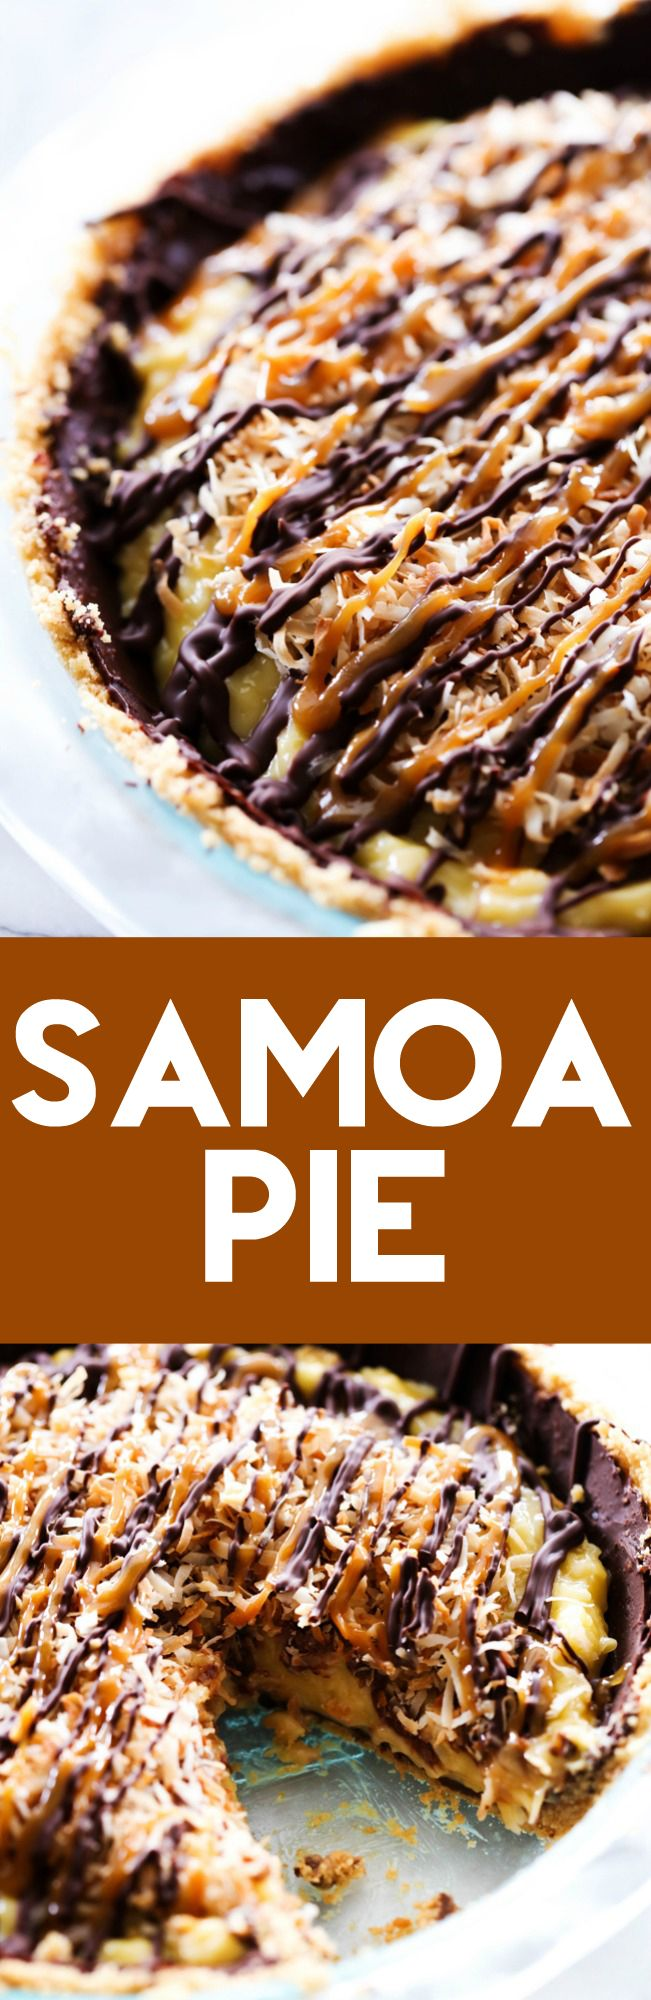 This Samoa Pie is packed with everything you love about the famous girl scout cookies only transformed into a new unforgettable dessert! It has a shortbread cookie crust layered with chocolate and a delightful coconut filling. It is also topped with chocolate and caramel and toasted coconut for the perfect finishing touch!